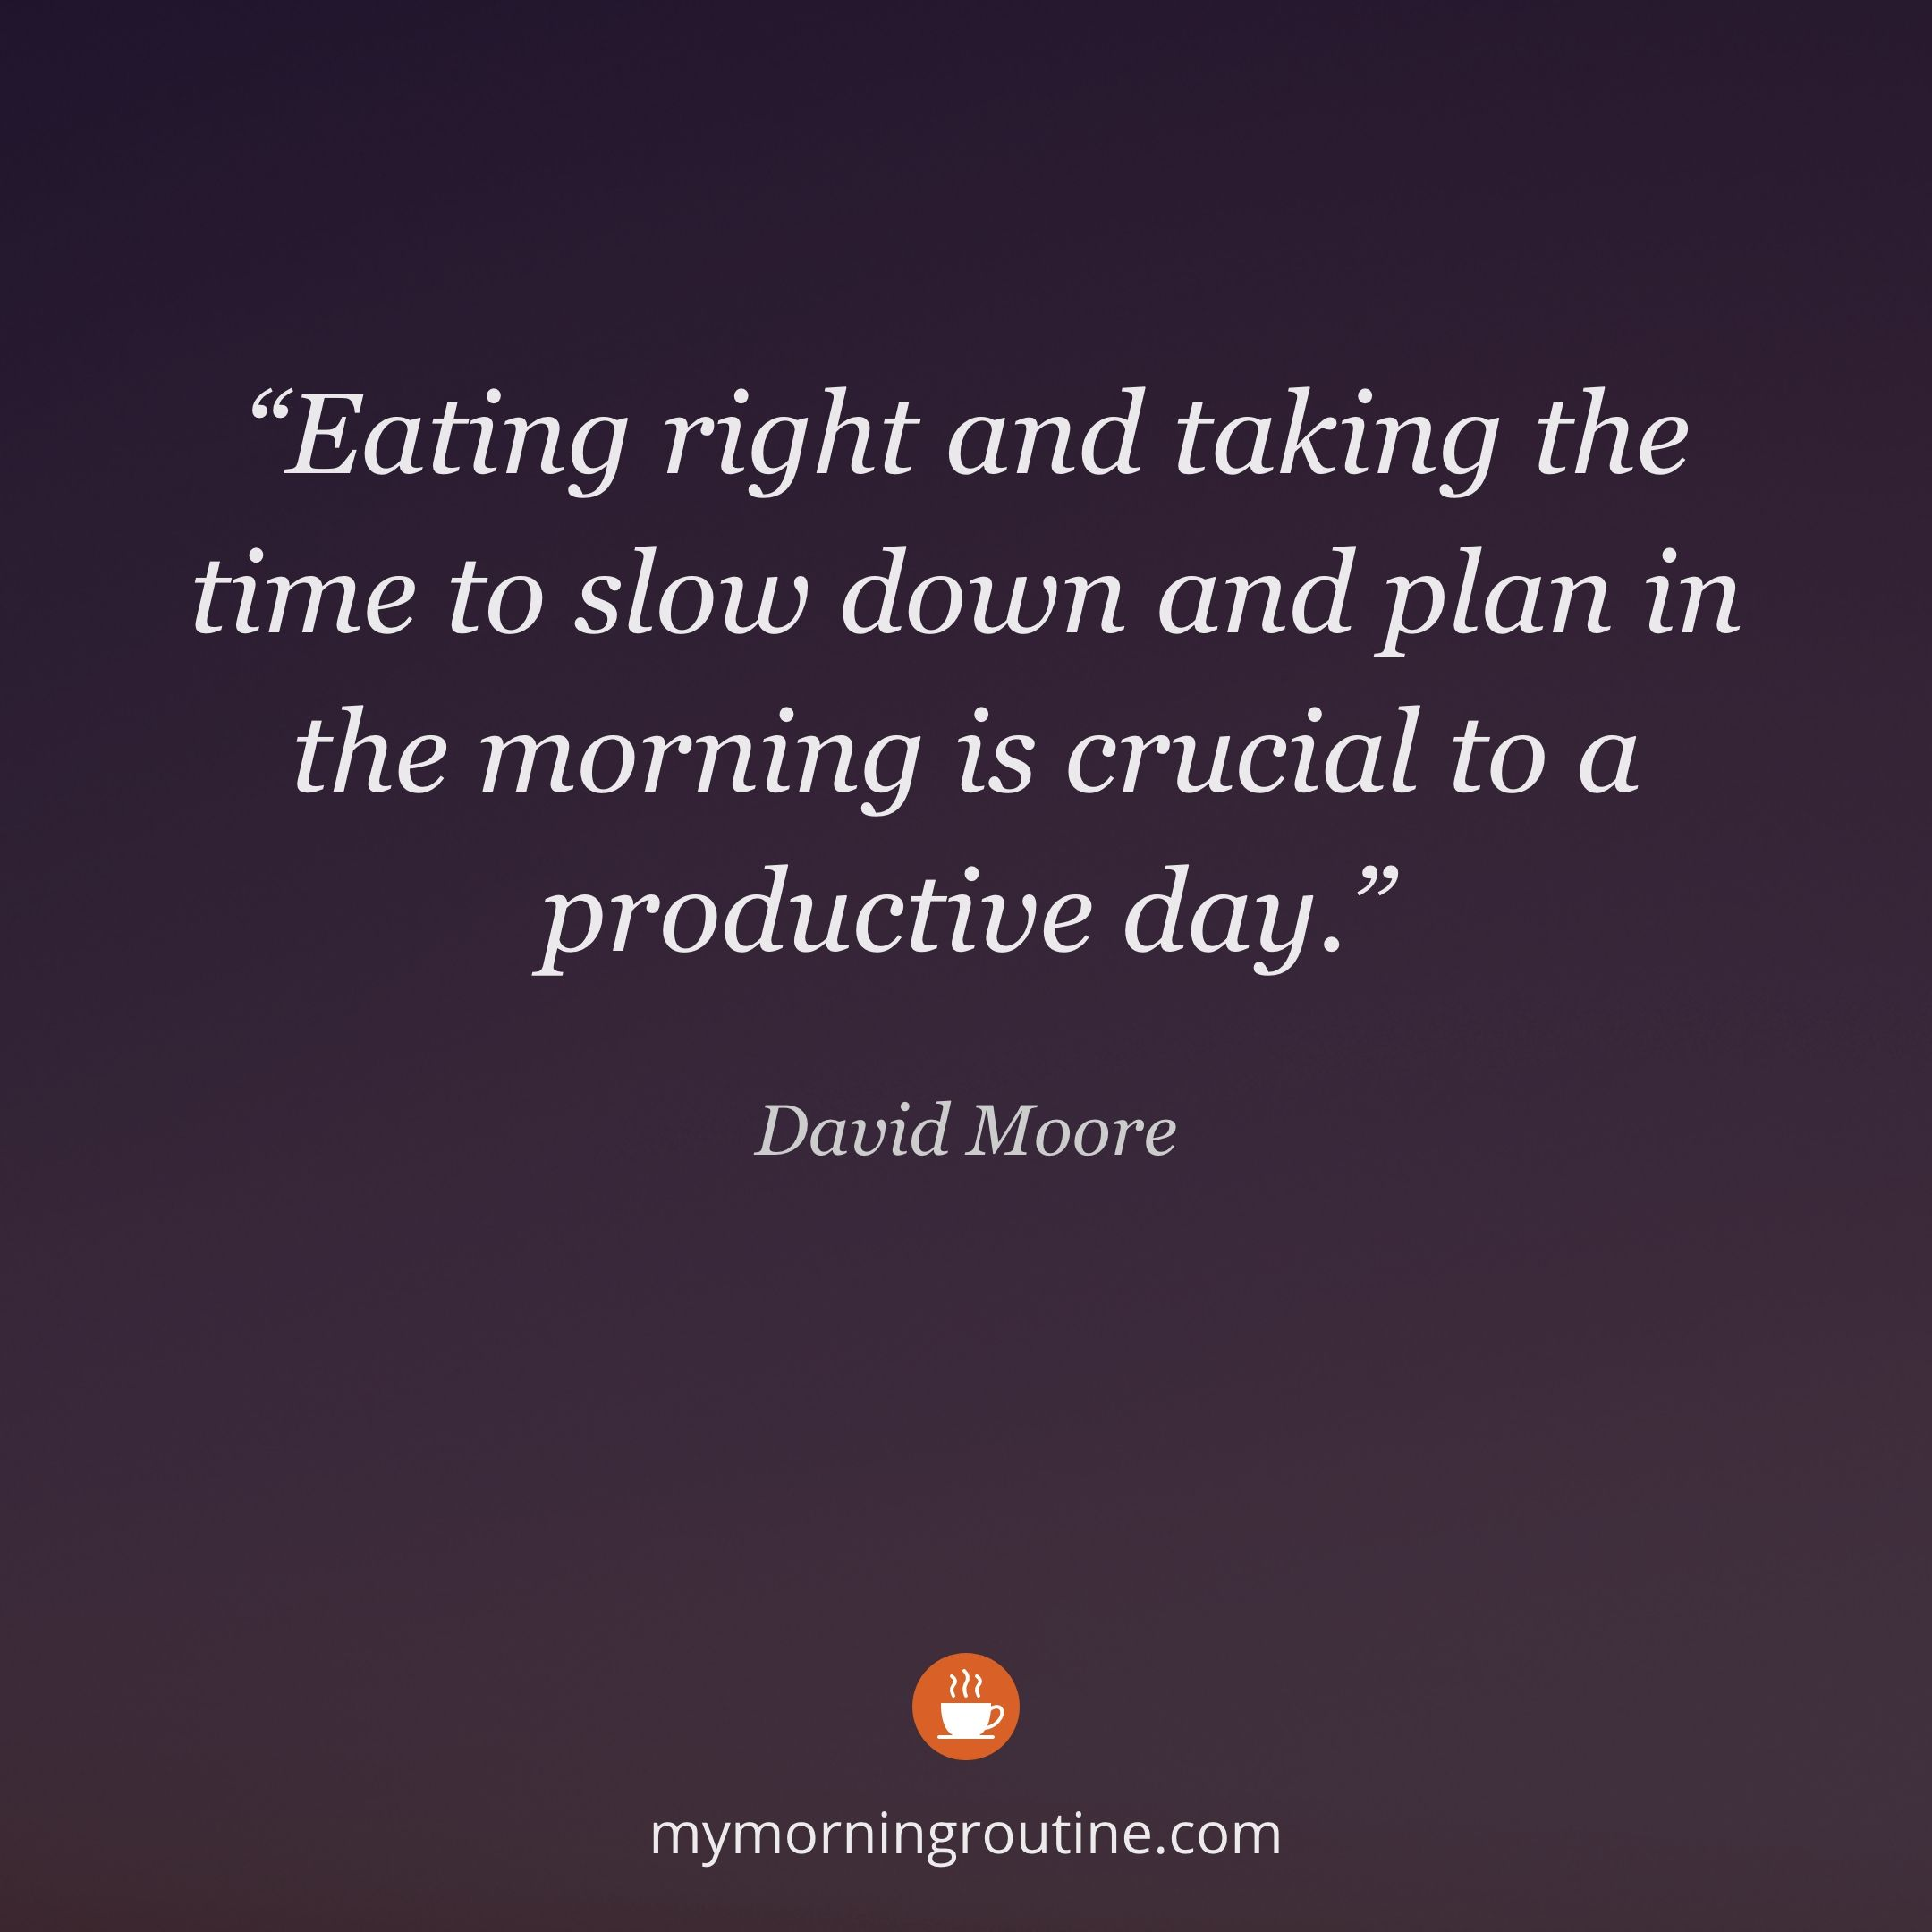 """""""Eating right and taking the time to slow down and plan in the morning is crucial to a productive day."""" — David Moore #mymorningroutine #dailymotivation #quotestoliveby #morningmotivation #selfdevelopment #motivationalquotes #morningquote #habits #morningquotes #productivity"""